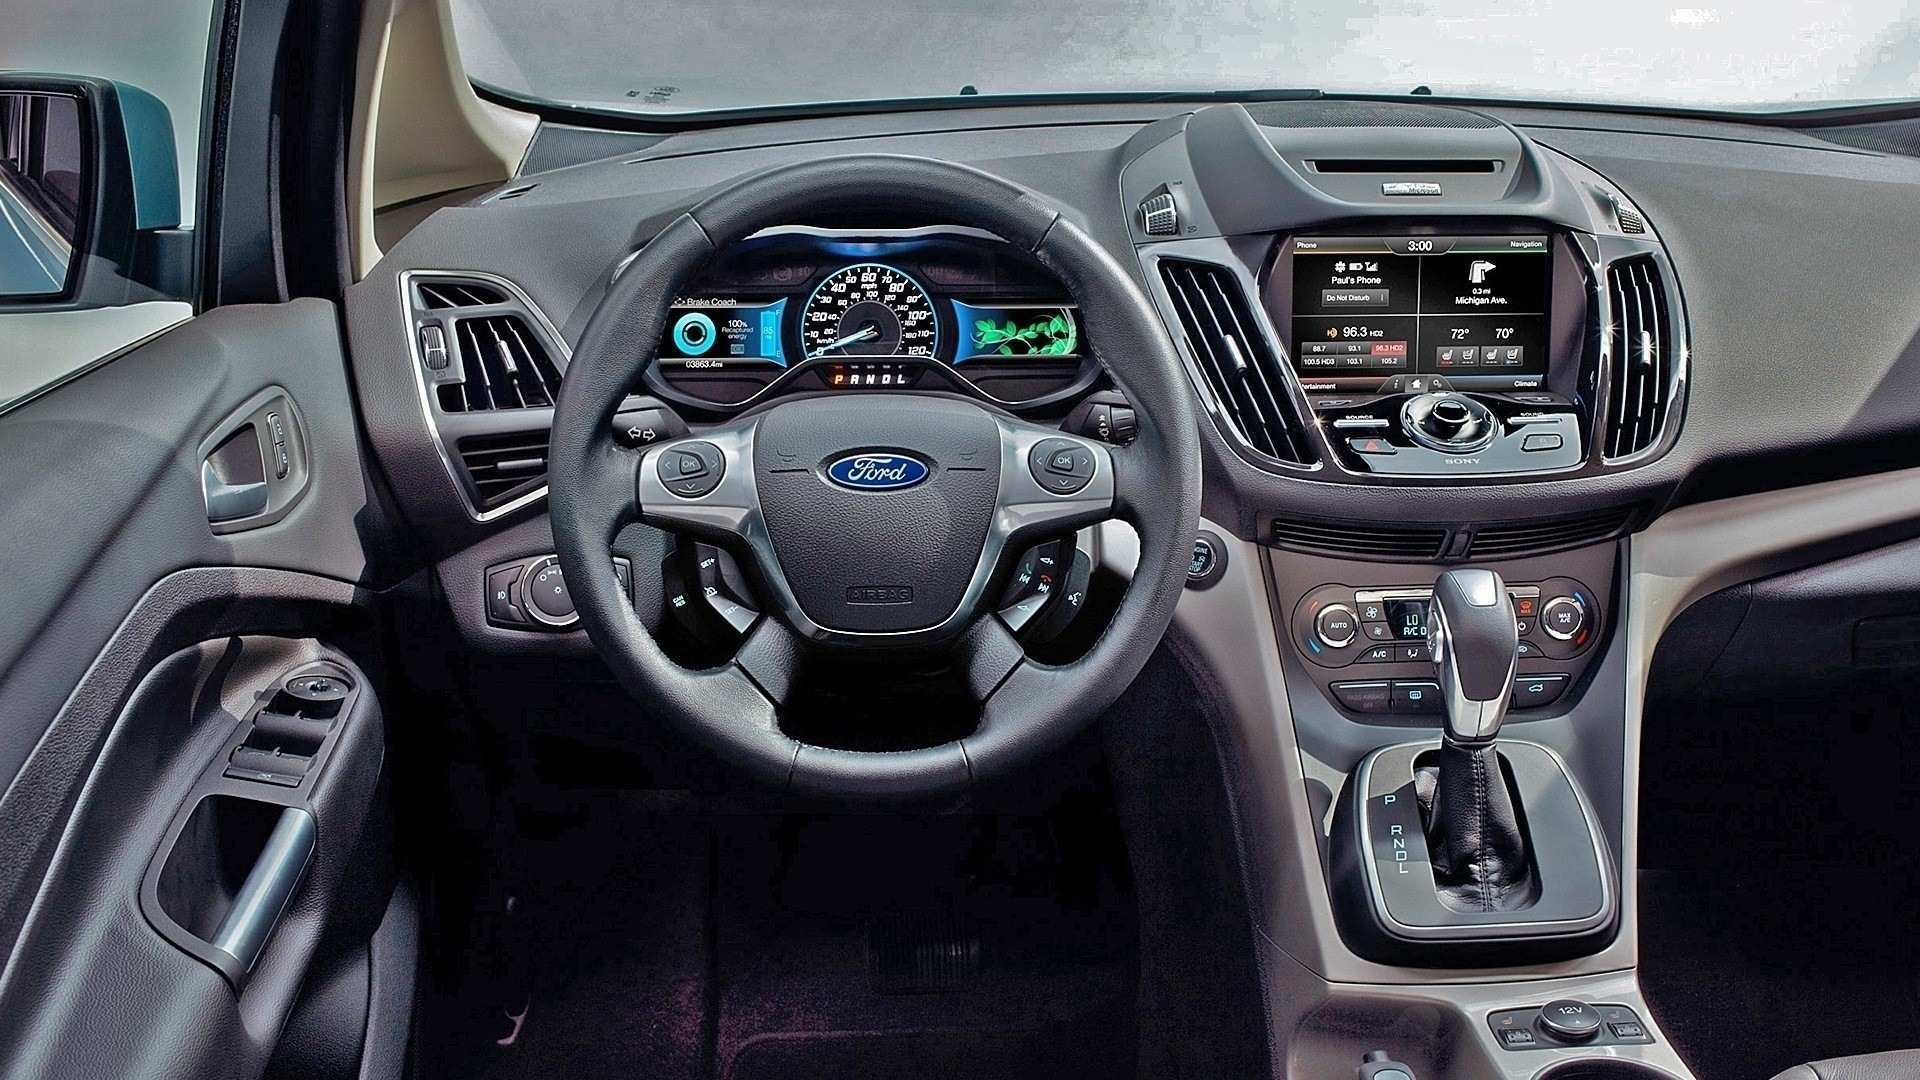 12 New Ford 2019 Interior Picture Release Date And Review Specs for Ford 2019 Interior Picture Release Date And Review